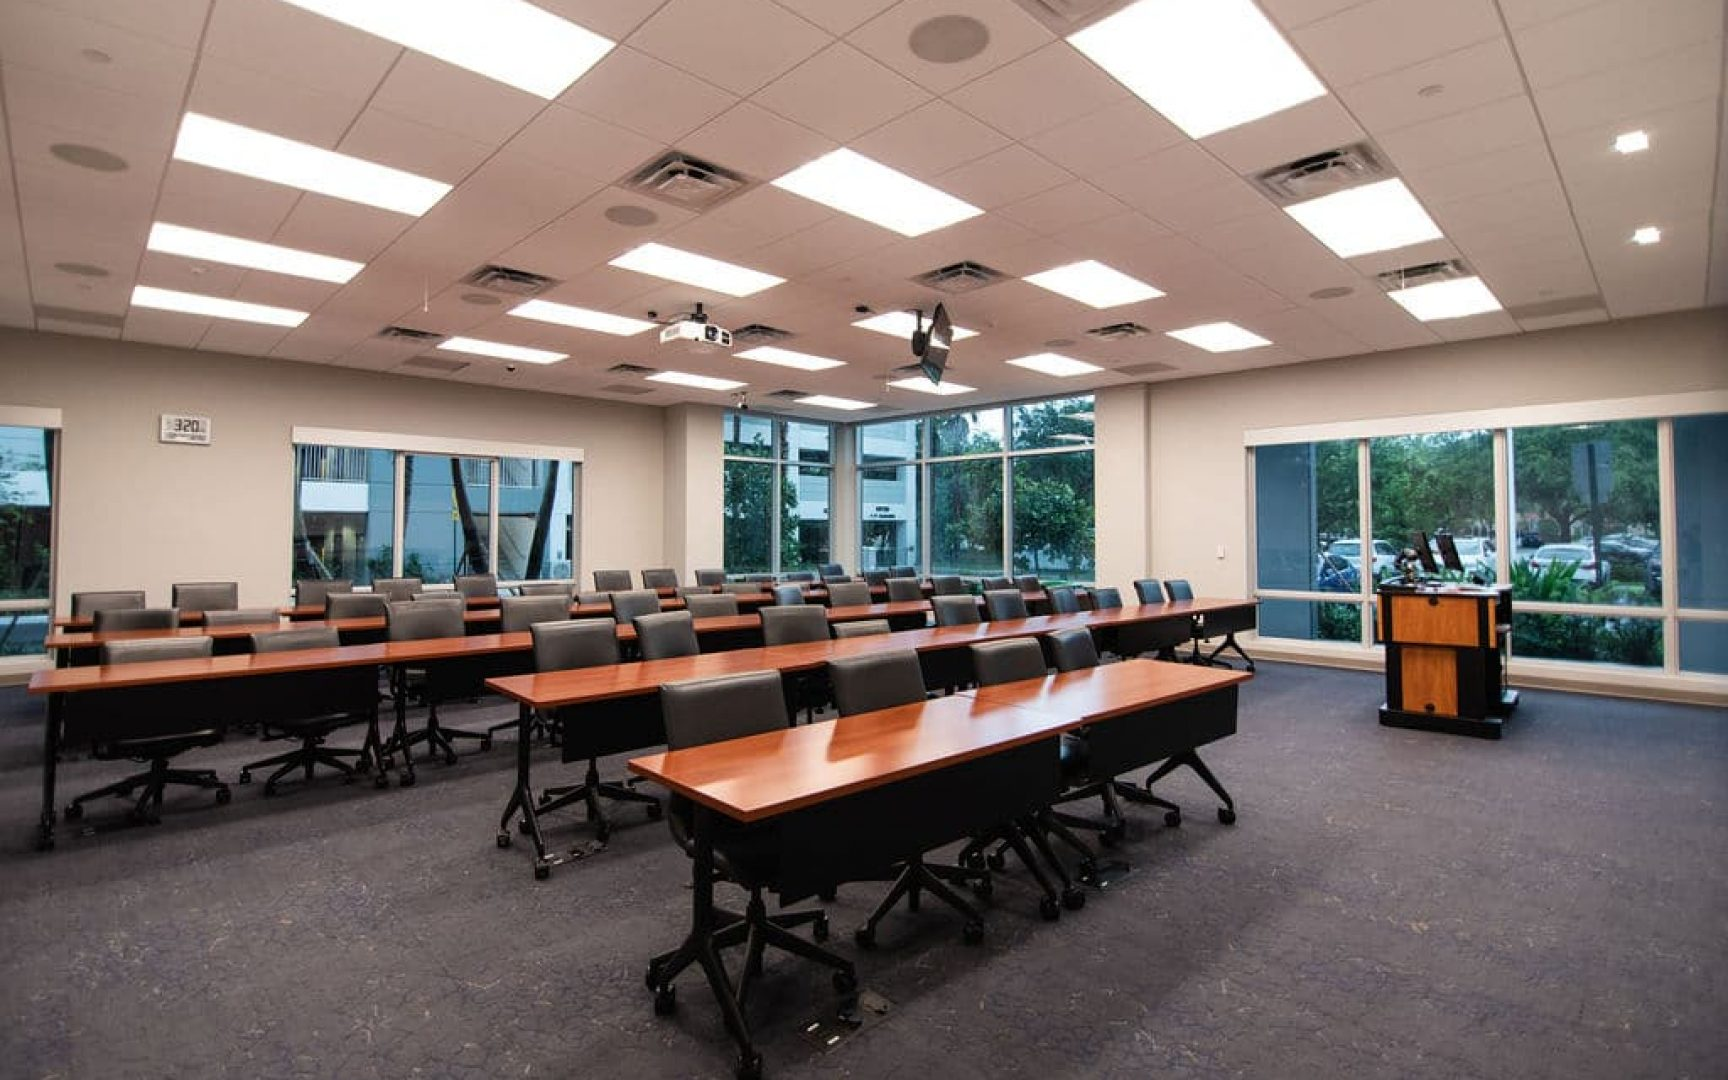 Classroom surrounded by large windows at the UF MBA South Florida Miramar location